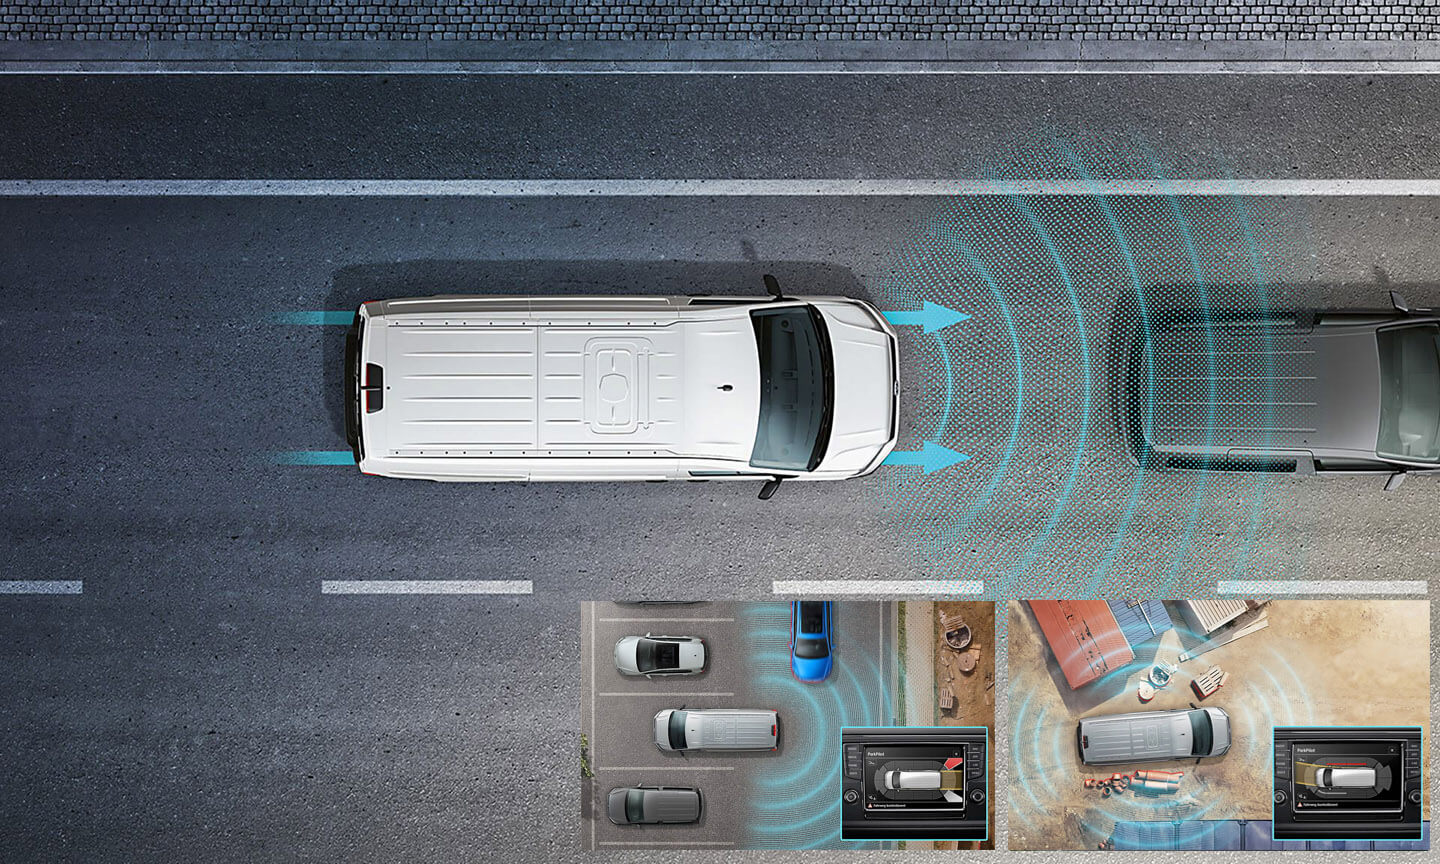 An extra set of eyes Driver assistance Image